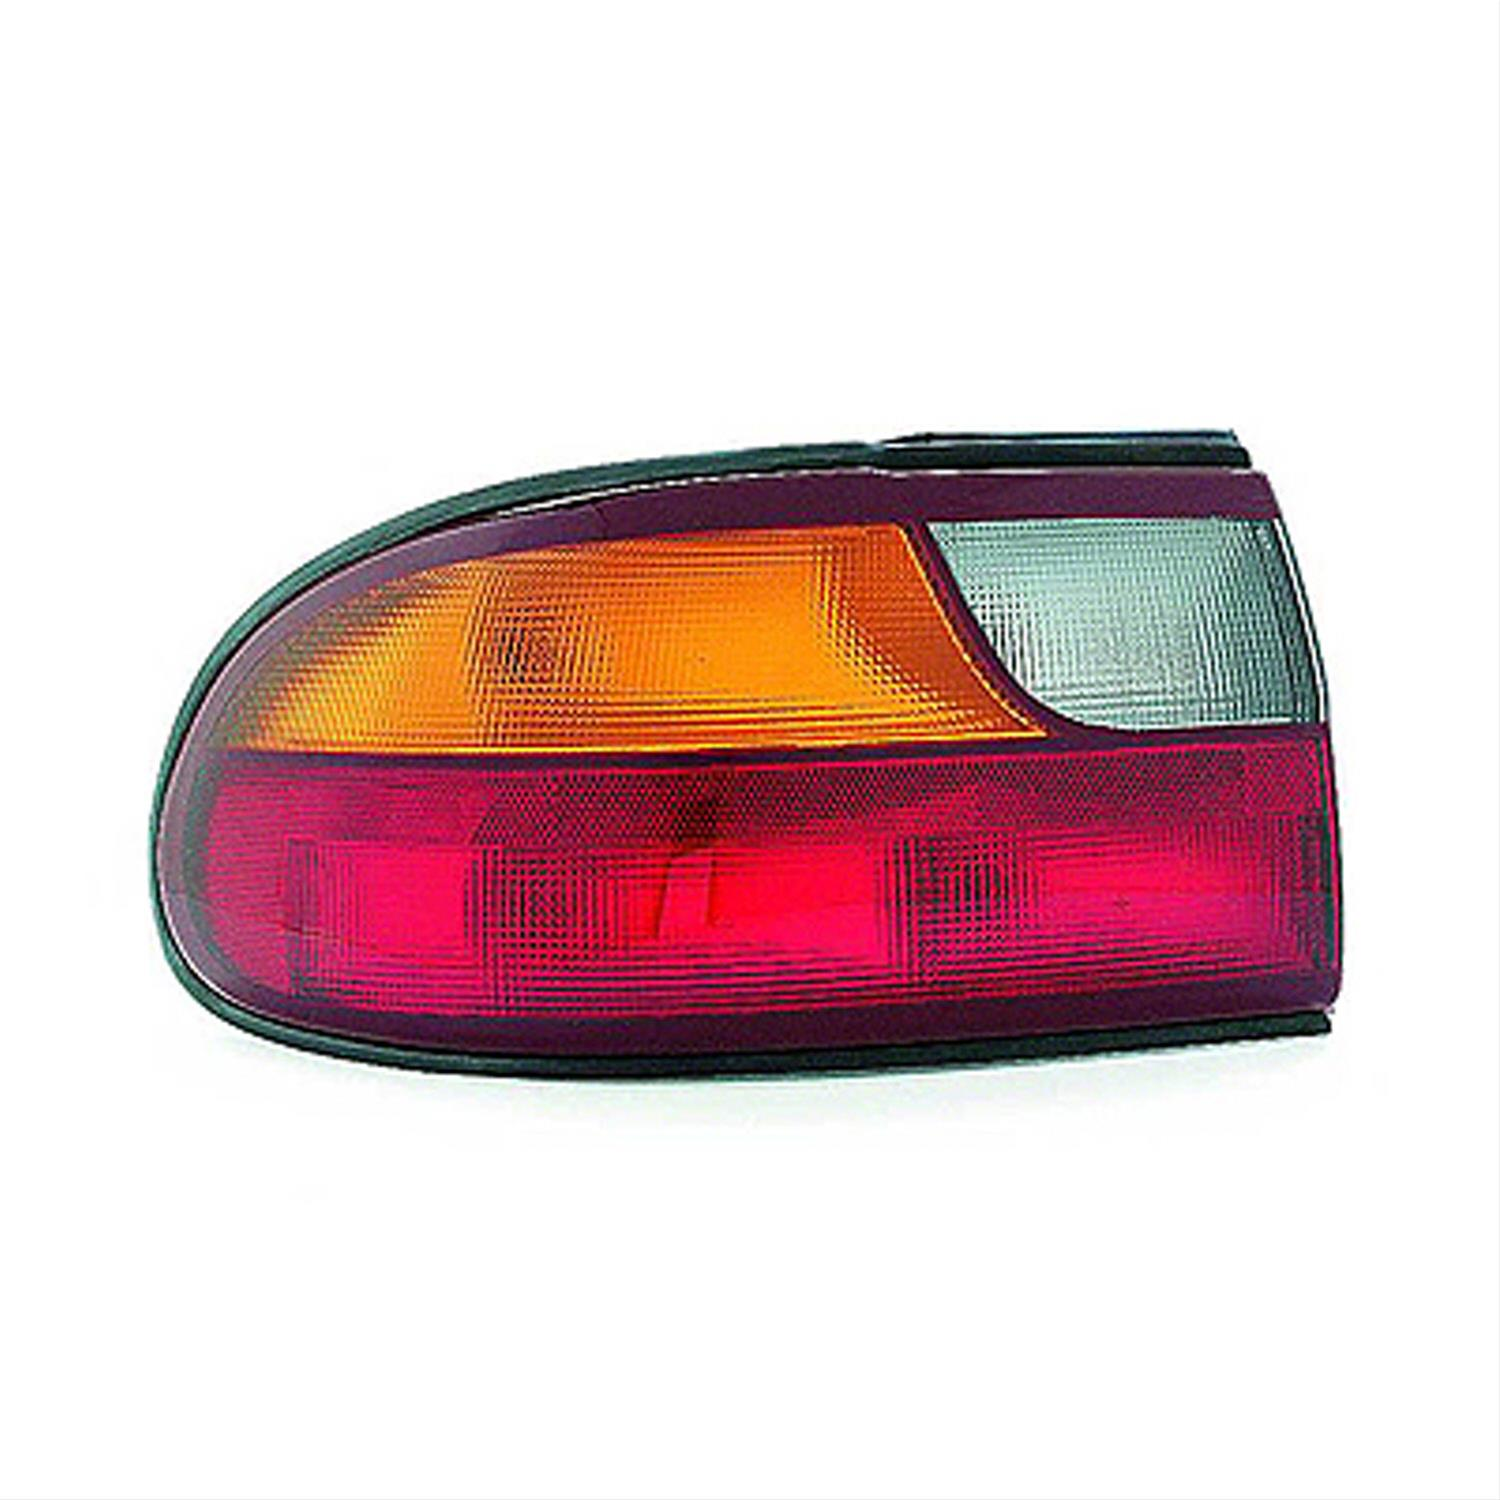 2000 Chevrolet Malibu Body Parts Taillight Emblies Gm2800132v Free Shipping On Orders Over 99 At Summit Racing